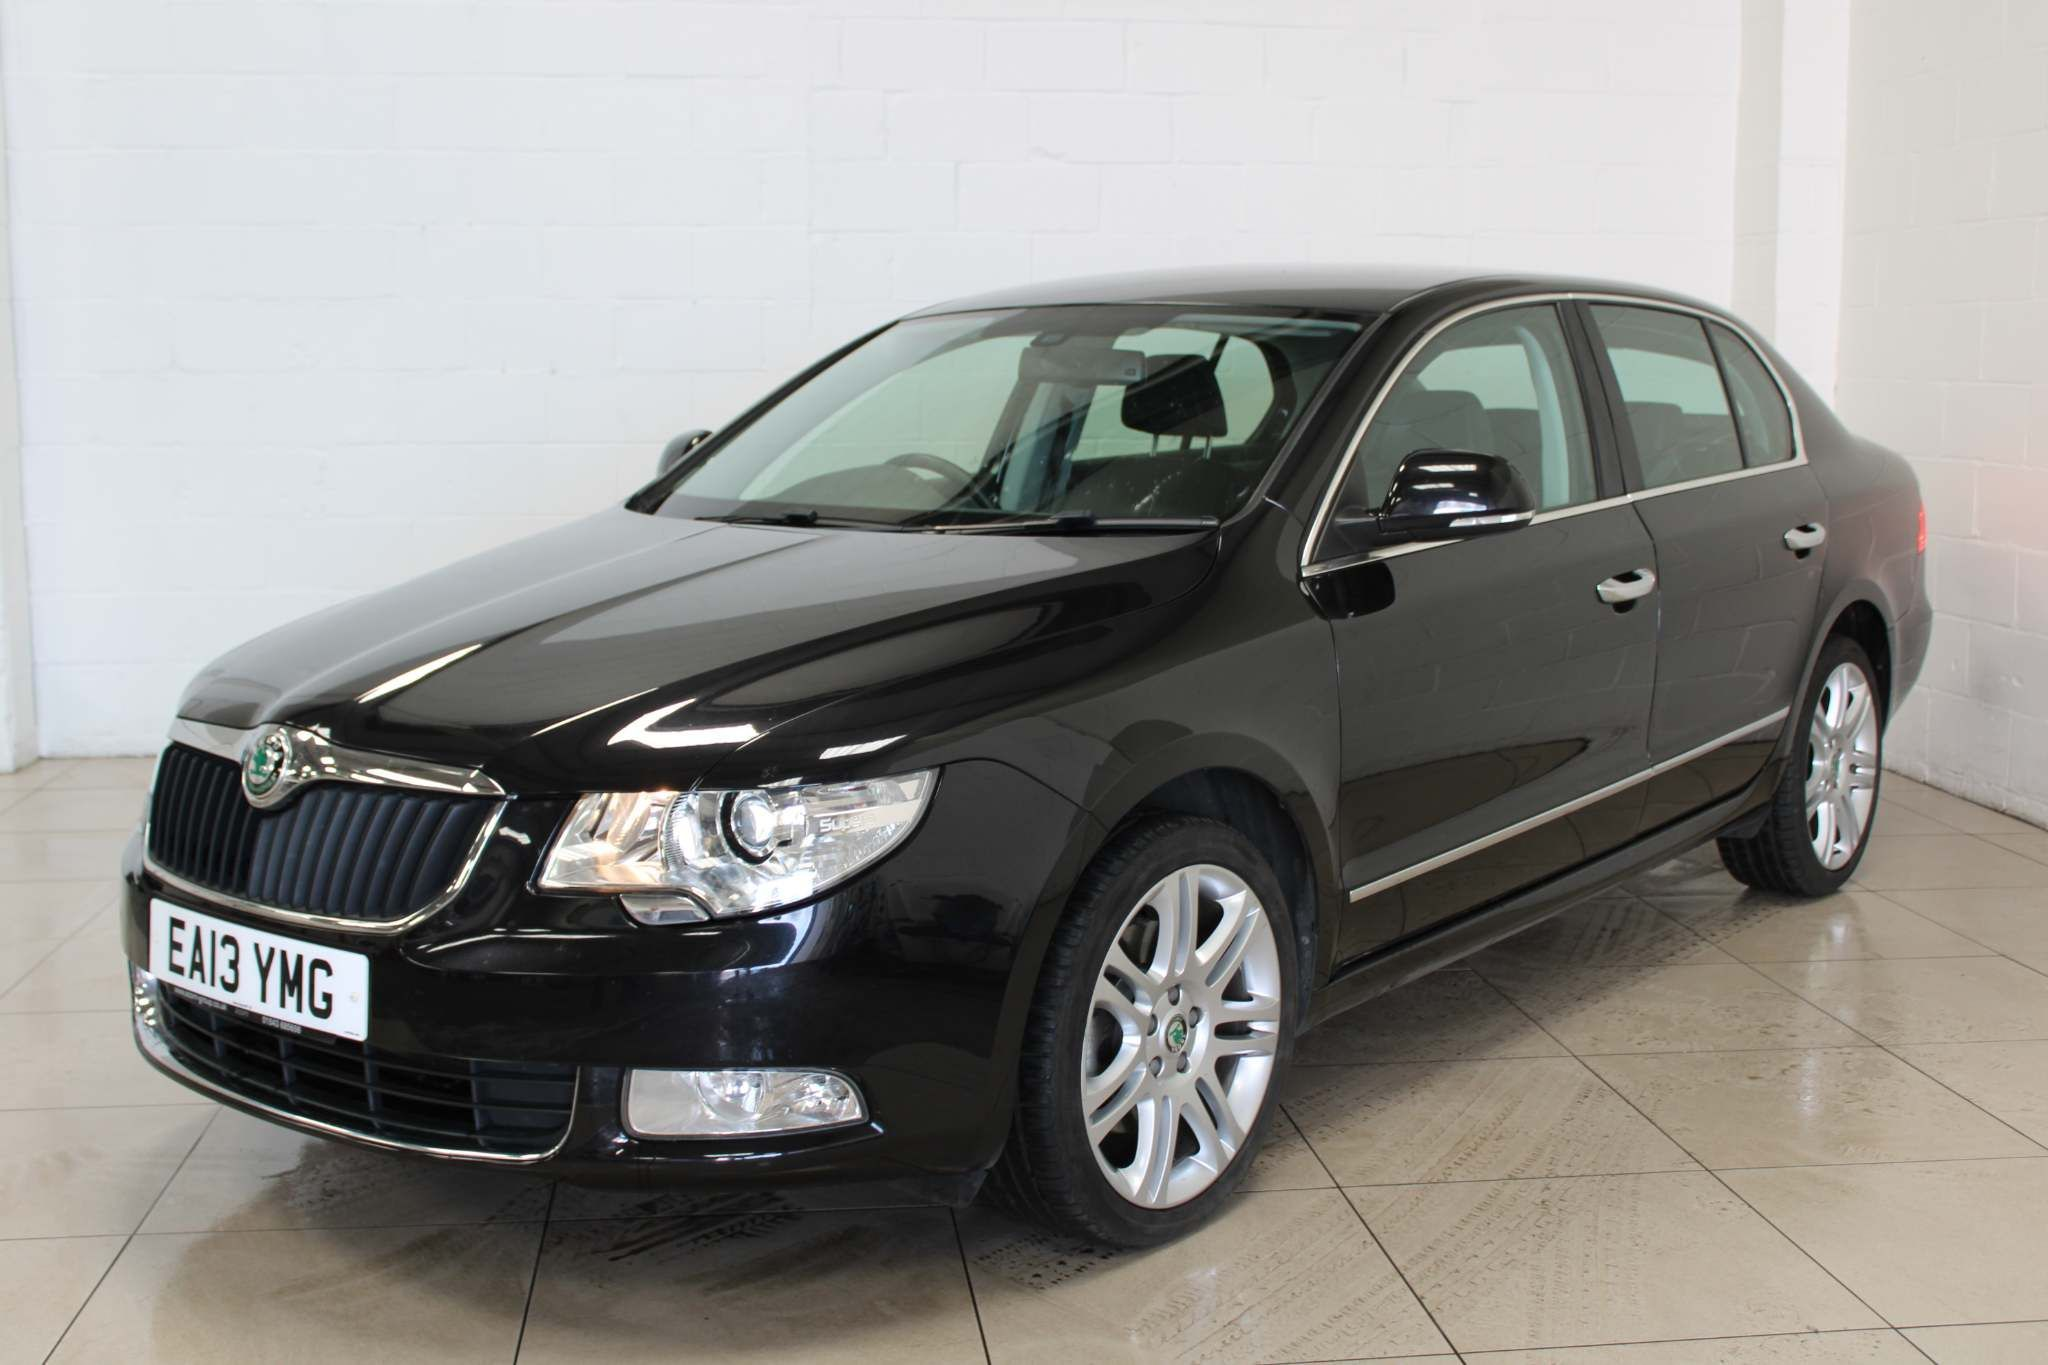 SKODA Superb ELEGANCE TDI CR 2.0 5dr